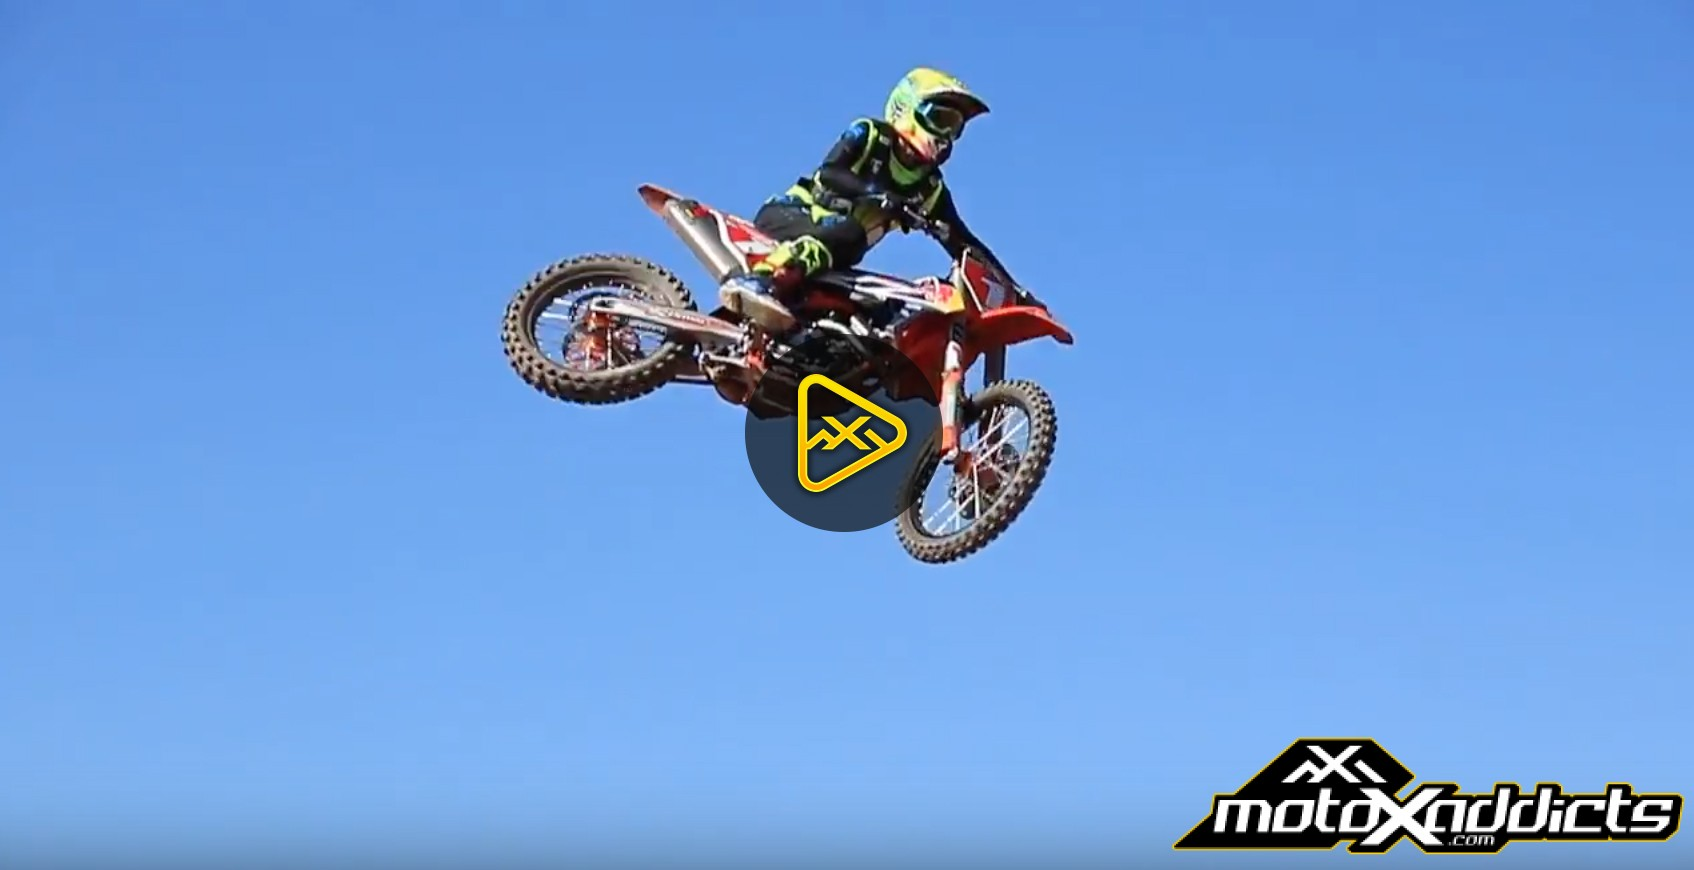 Ryan Dungey Factory KTM SX450F Test Ride